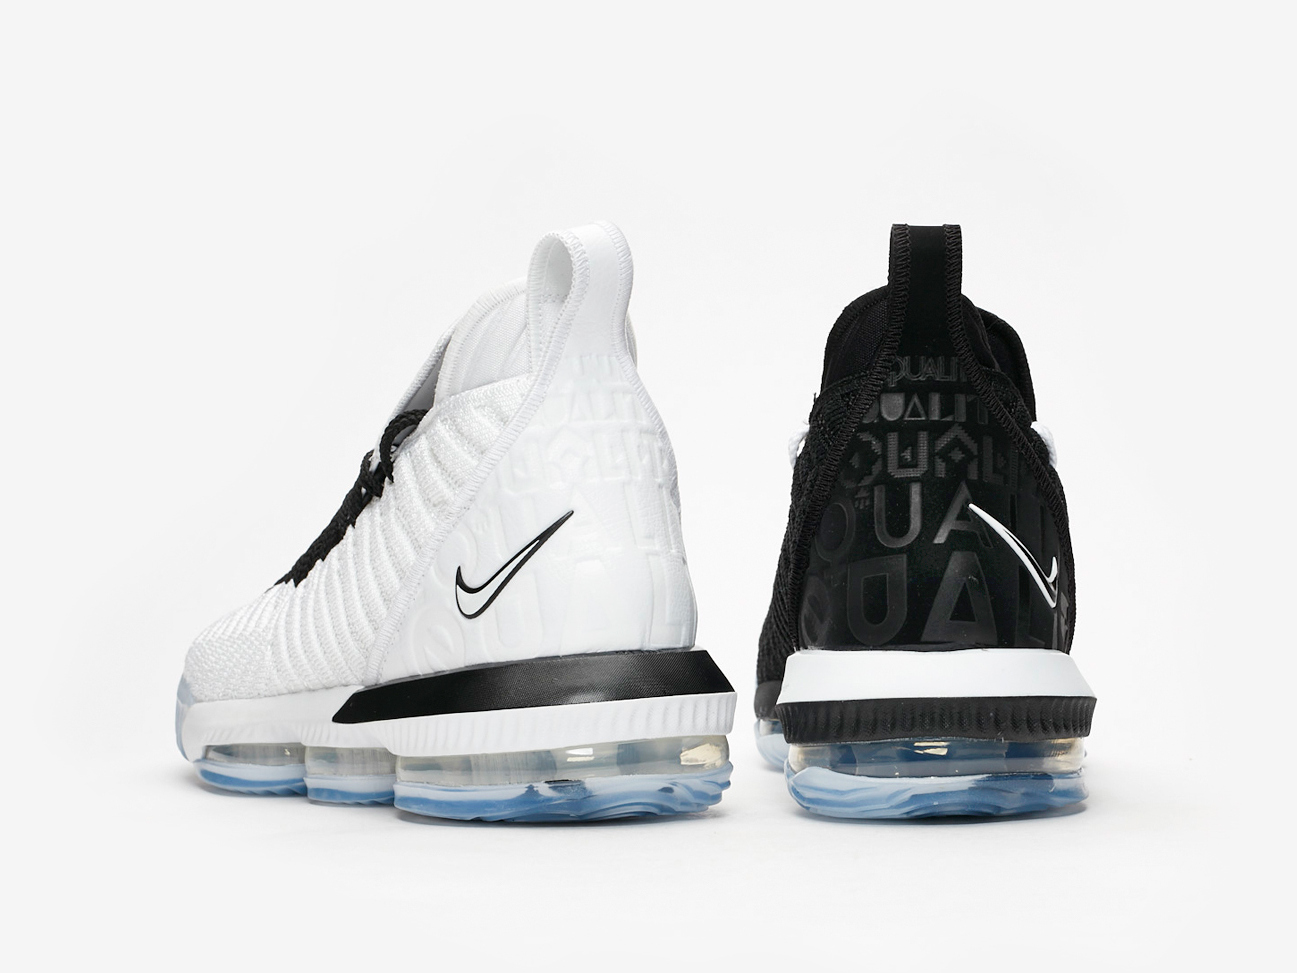 39e6066adcd ... make a matching set with two black and or two white you need to buy two  different sets. bhmblack history monthBQ5969-100BQ5969-101equalitylebron  16nike ...